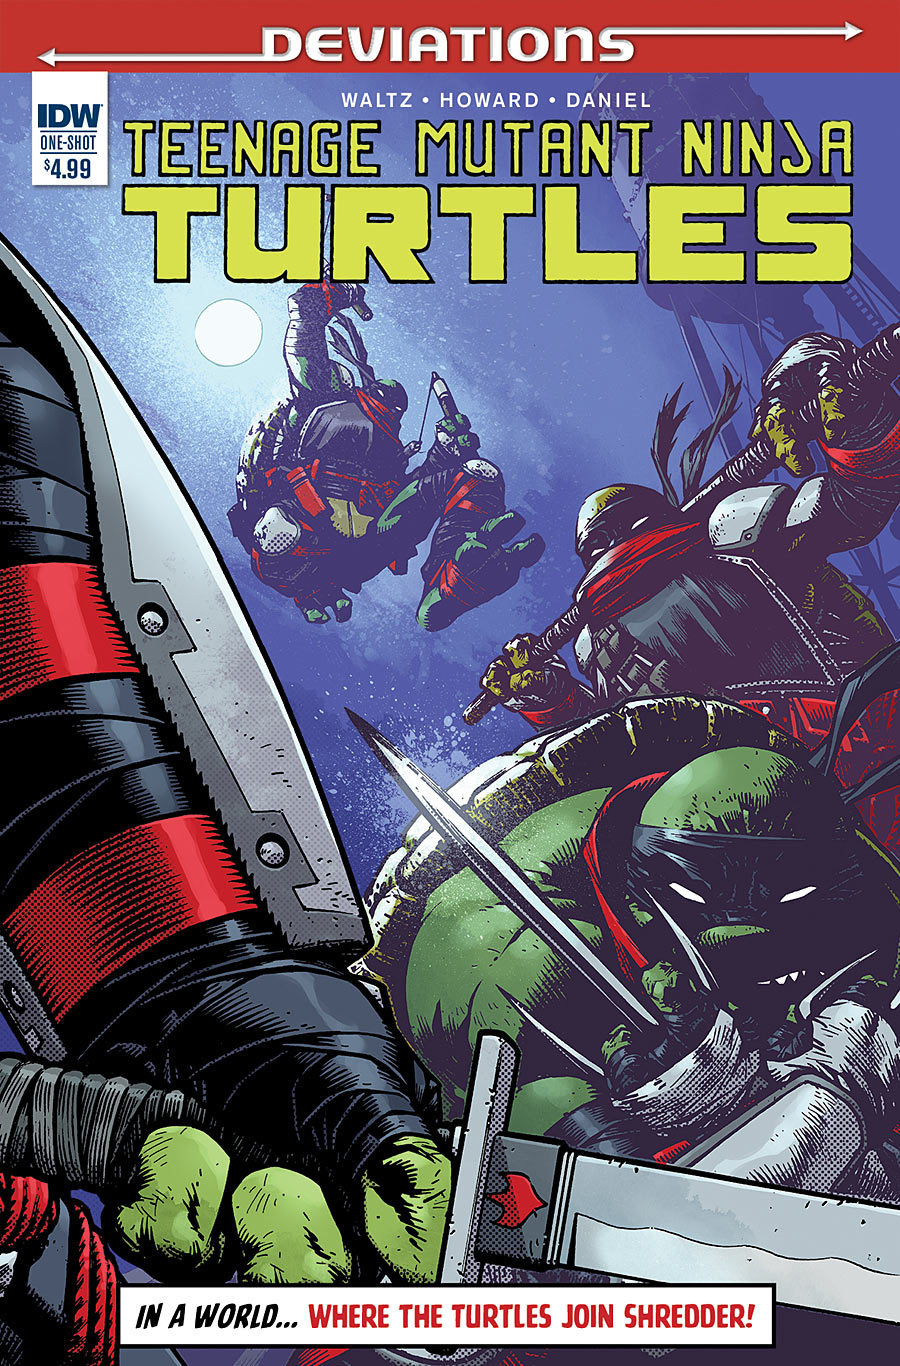 TMNT-Deviations-cover-dc1f9